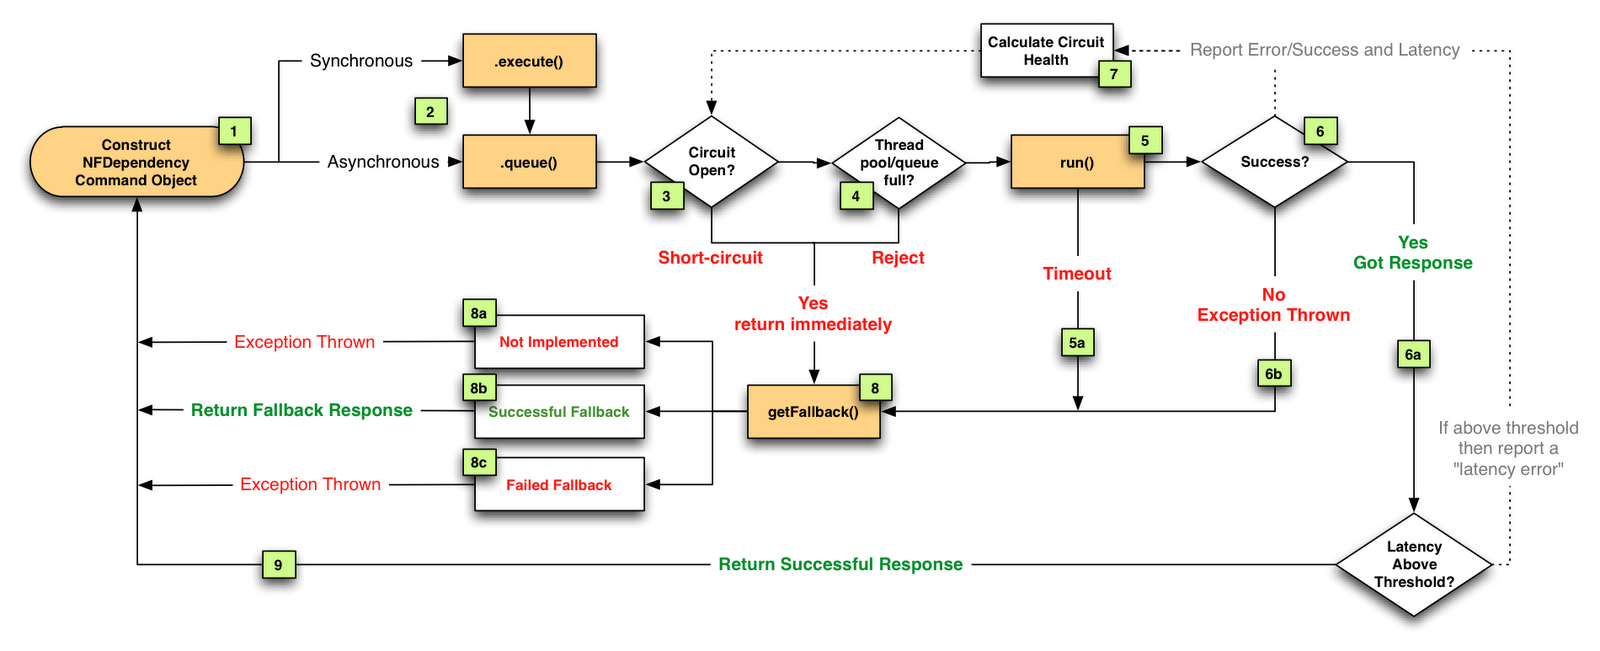 3 types of faults diagram 6 pin bt plug wiring fault tolerance in a high volume distributed system chart below for any failure or rejection steps 4 5a 6b regardless which type network thread timeout